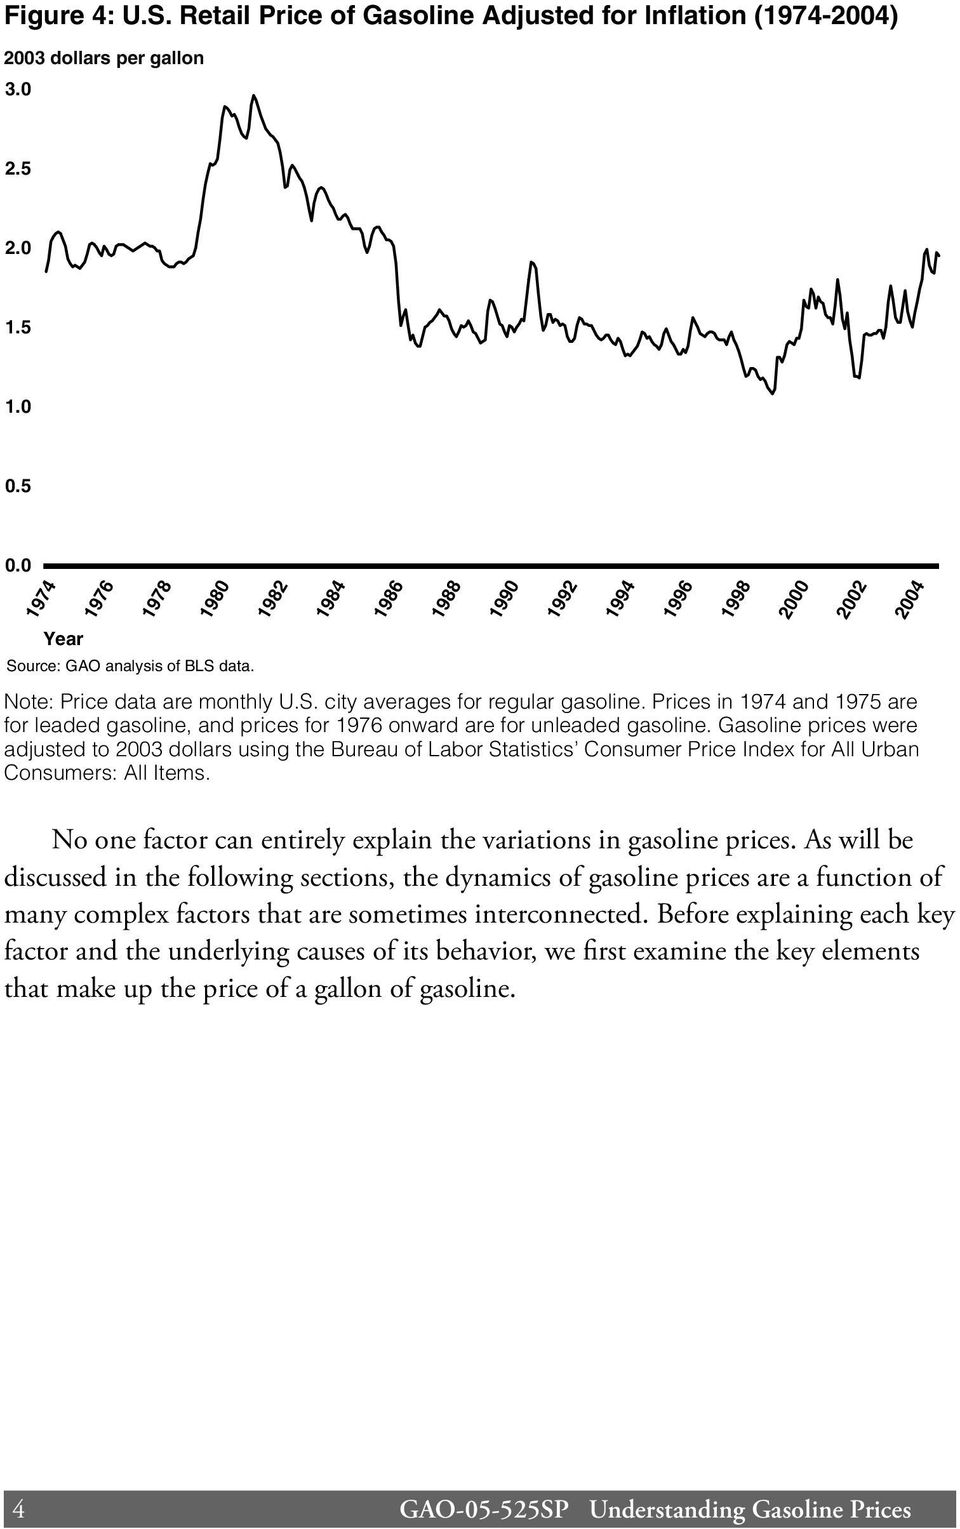 Prices in 1974 and 1975 are for leaded gasoline, and prices for 1976 onward are for unleaded gasoline.